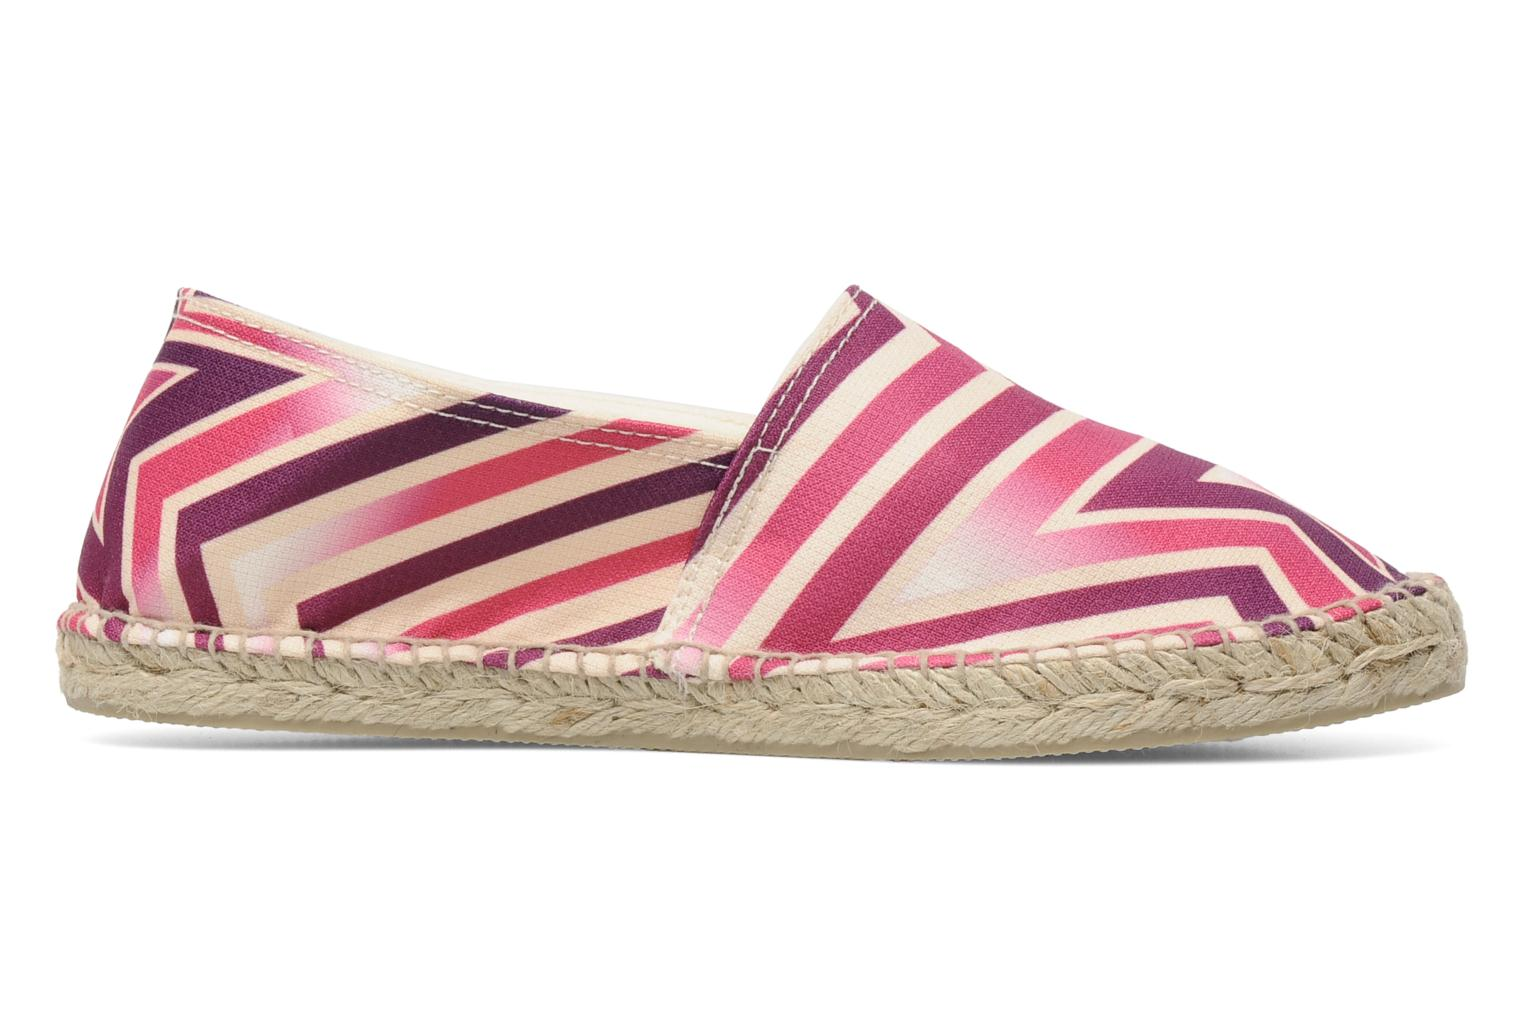 Espadrilles String Republic Moscow by Evgeny Kiselev W Multicolor achterkant